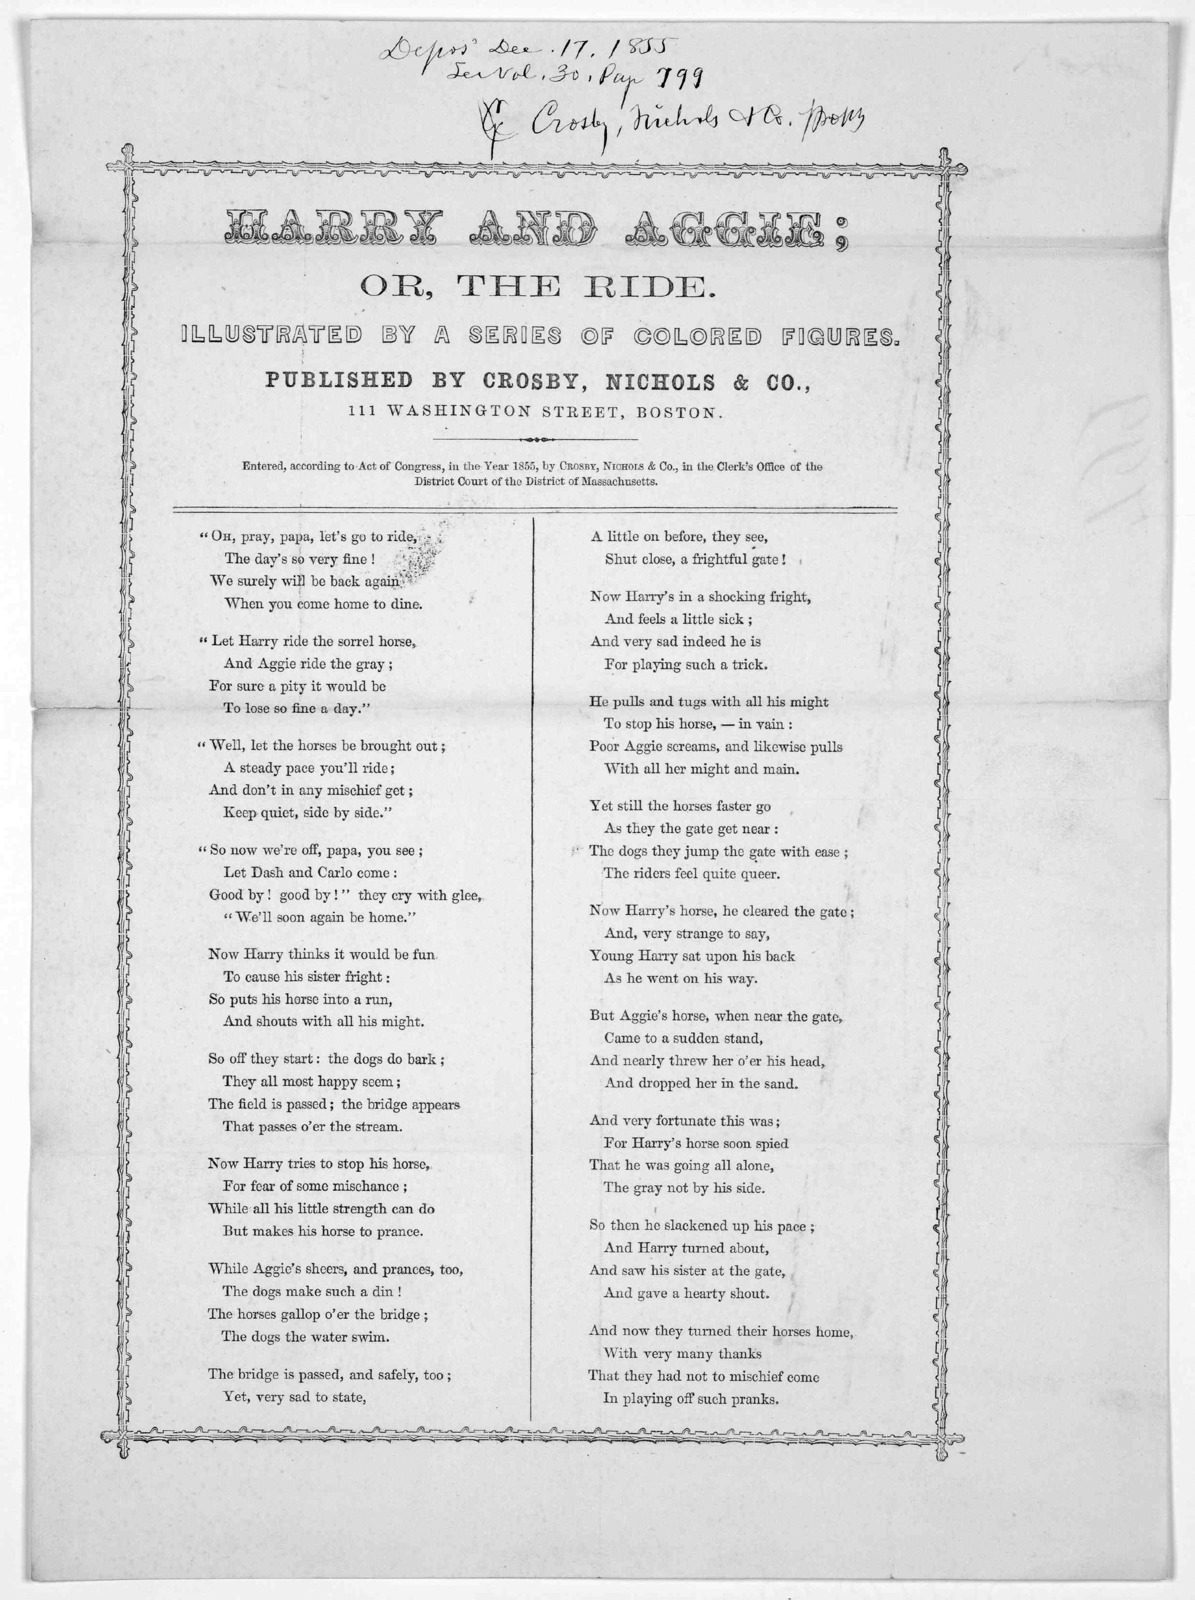 Harry and Aggie; or, the ride ... Published by Crosby, Nichols & Co. Boston. [c. 1855].